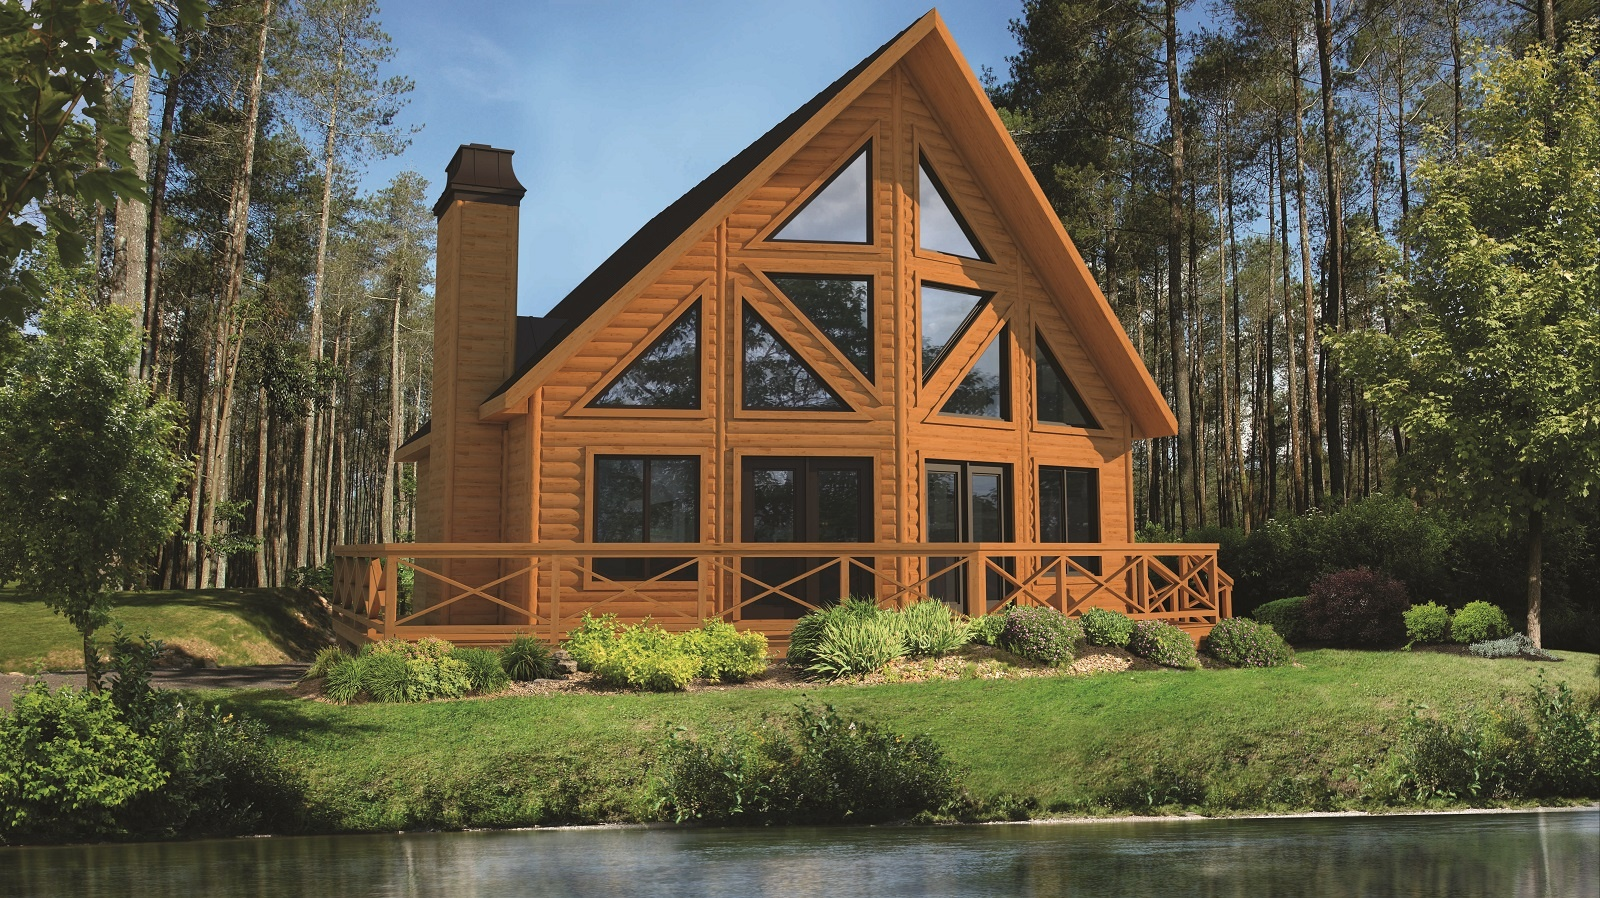 Timber Block classic wood home